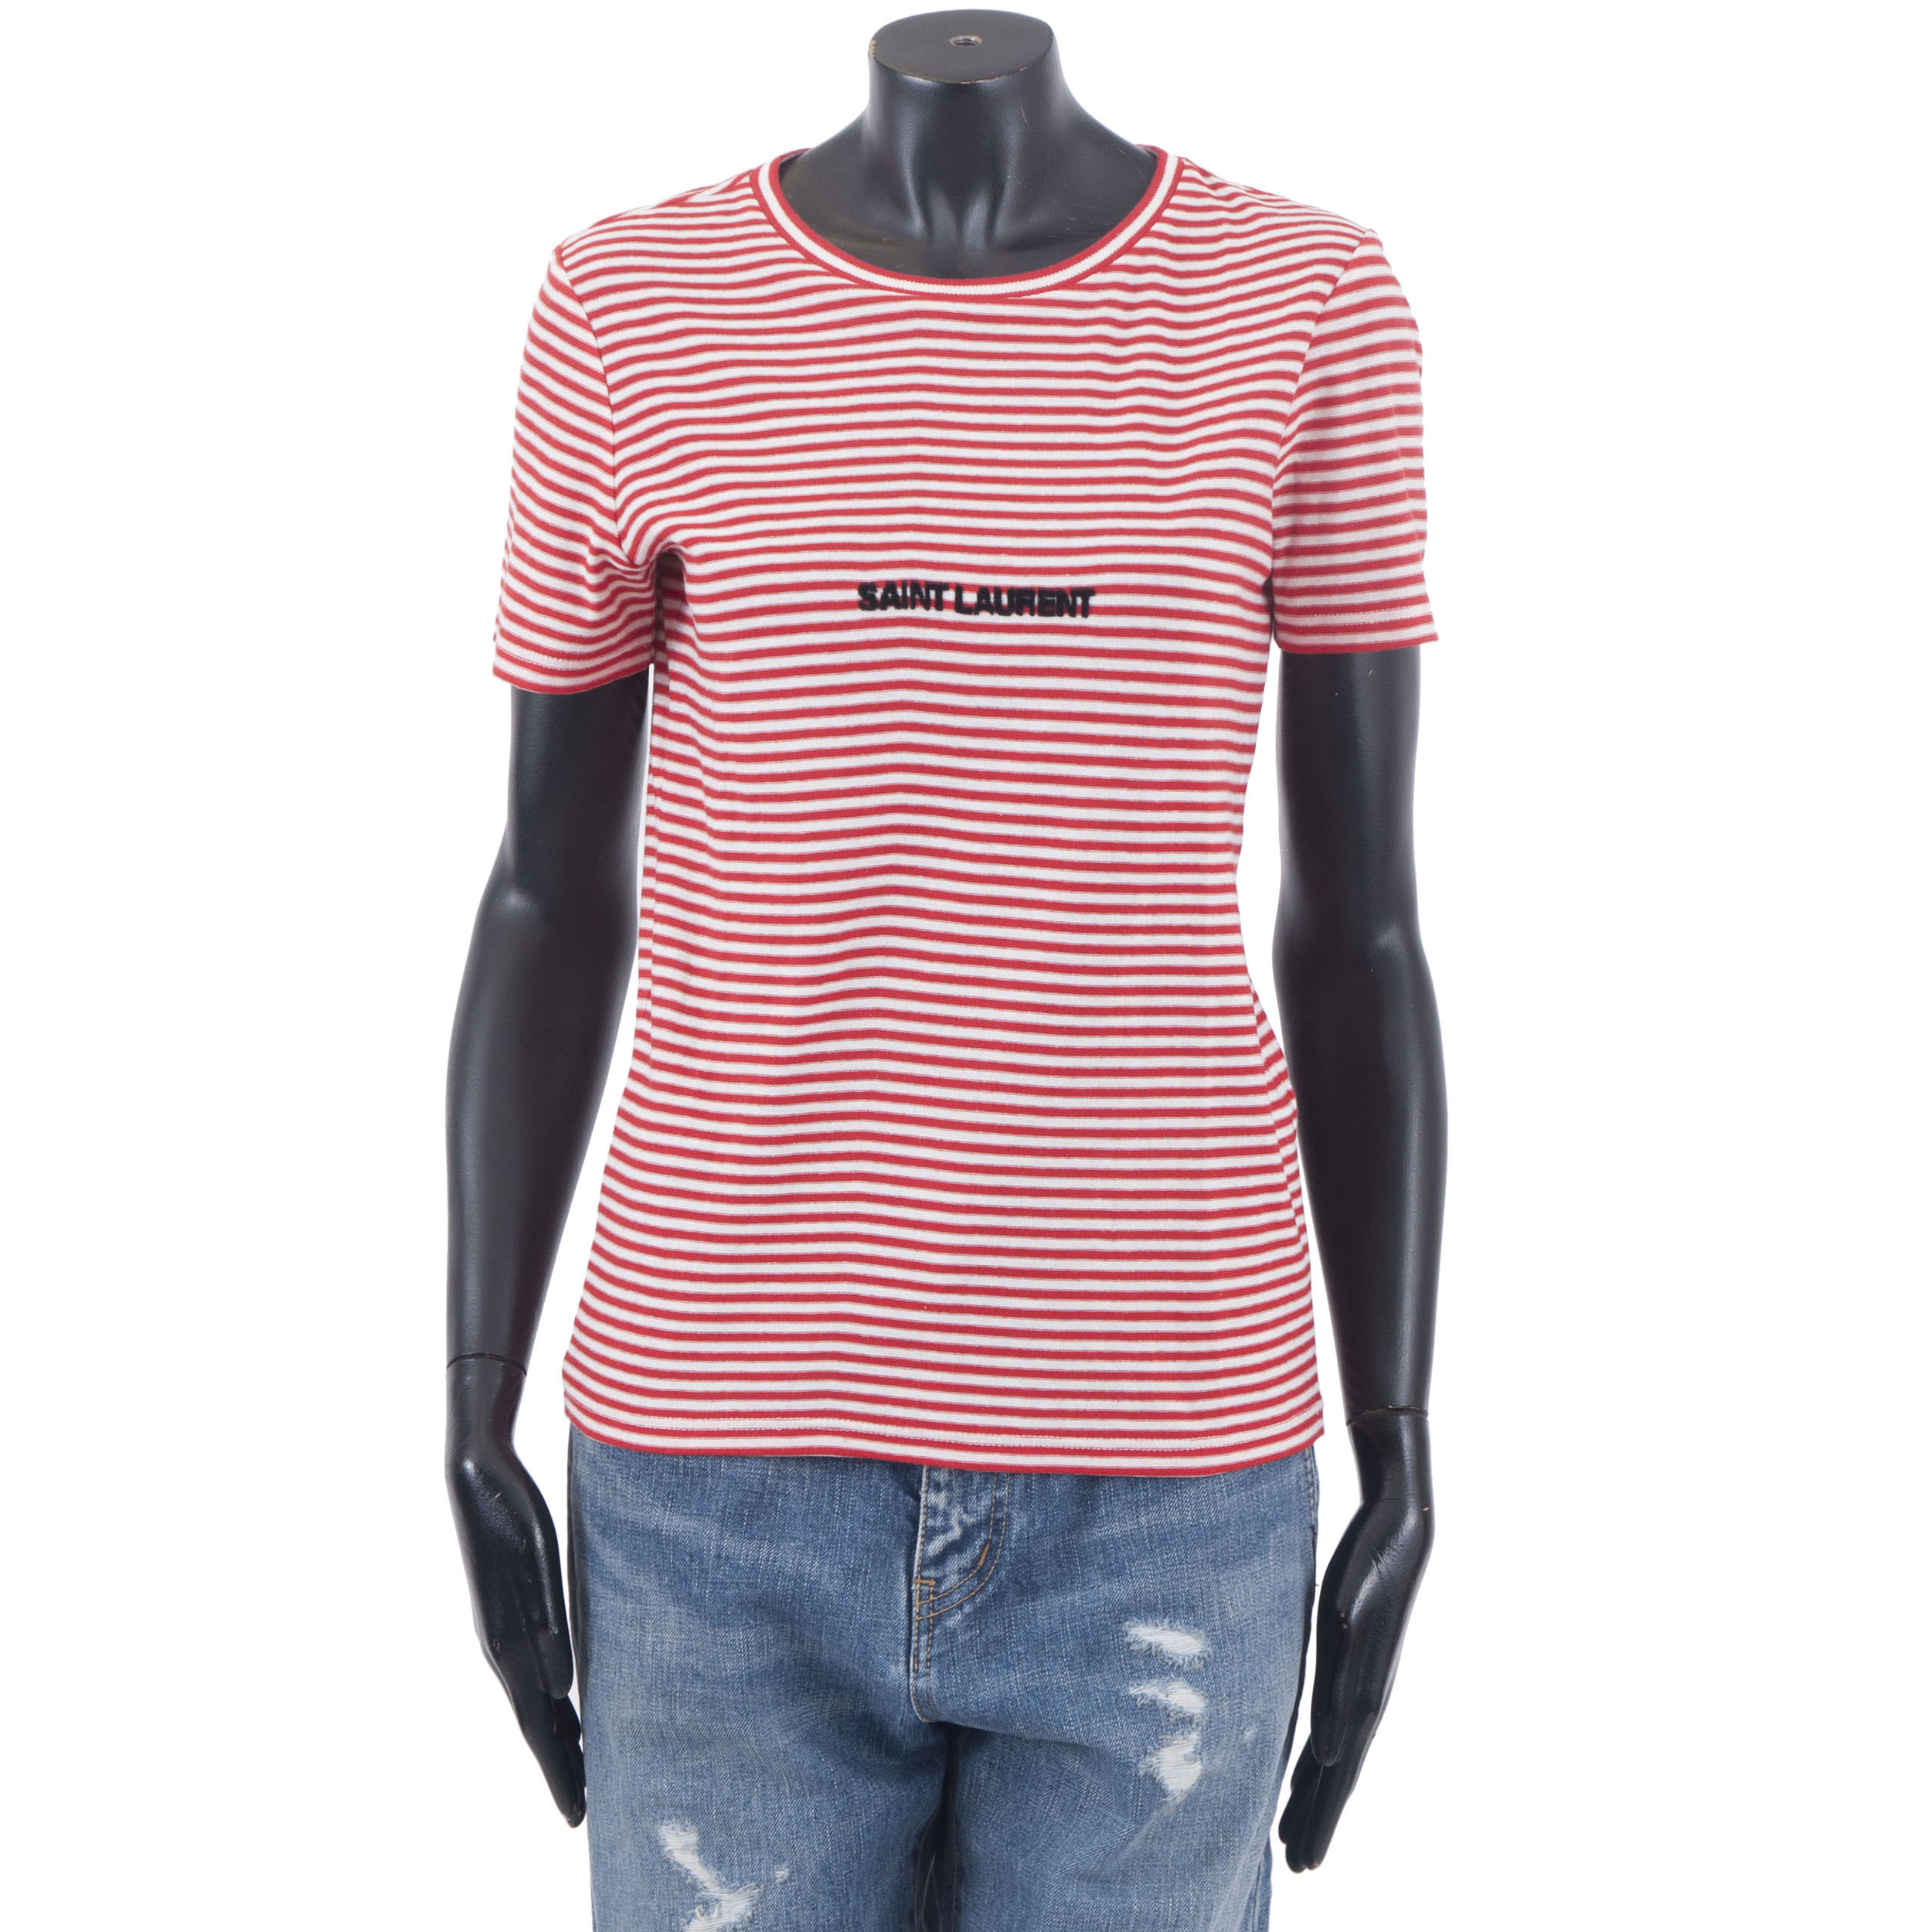 4fea5ec8d11 Details about SAINT LAURENT PARIS 490$ Authentic New Red & White Striped  Cotton Logo Tshirt